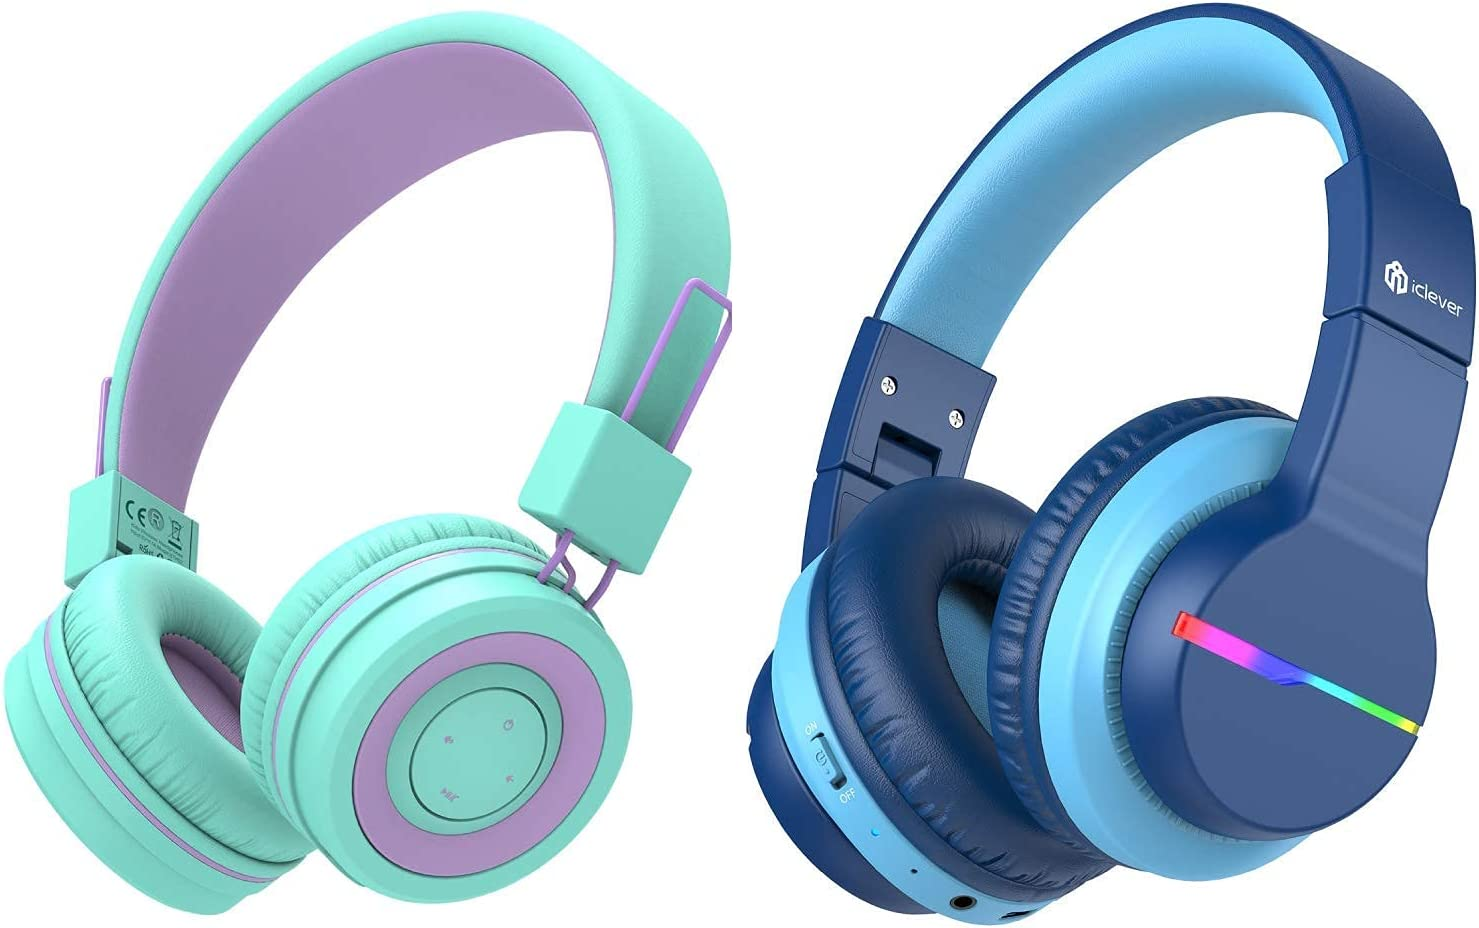 iClever BTH02 Kids Wireless Headphones and BTH12 Kid Bluetooth Headphones Bundle, Kids Headphones with Microphone for School, Green&Blue